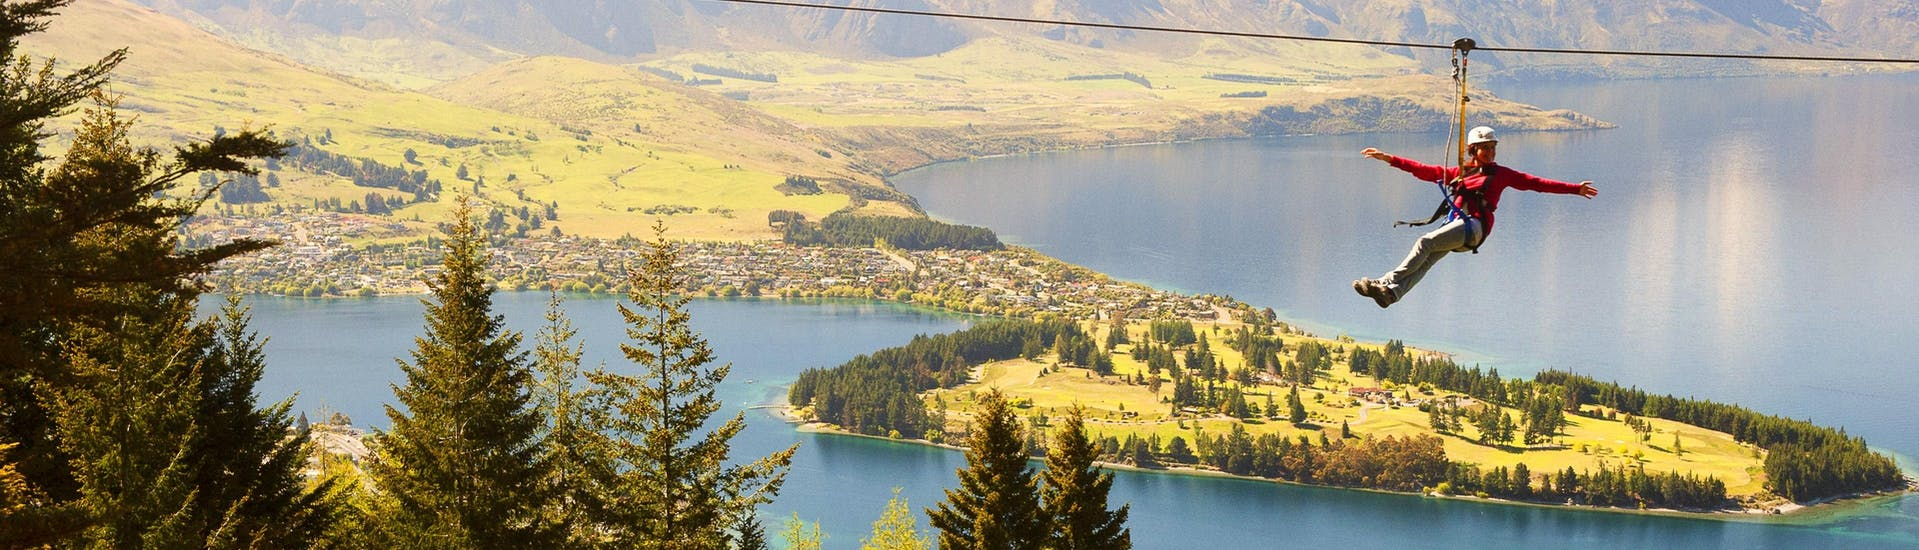 A girl looks at the panorama from the zipline during Zipline in Queenstown - Moa: 4 Lines of the Ziptrek Ecotours Queenstown, behind her a lush landscape and the wonderful Lake Wakatipu.